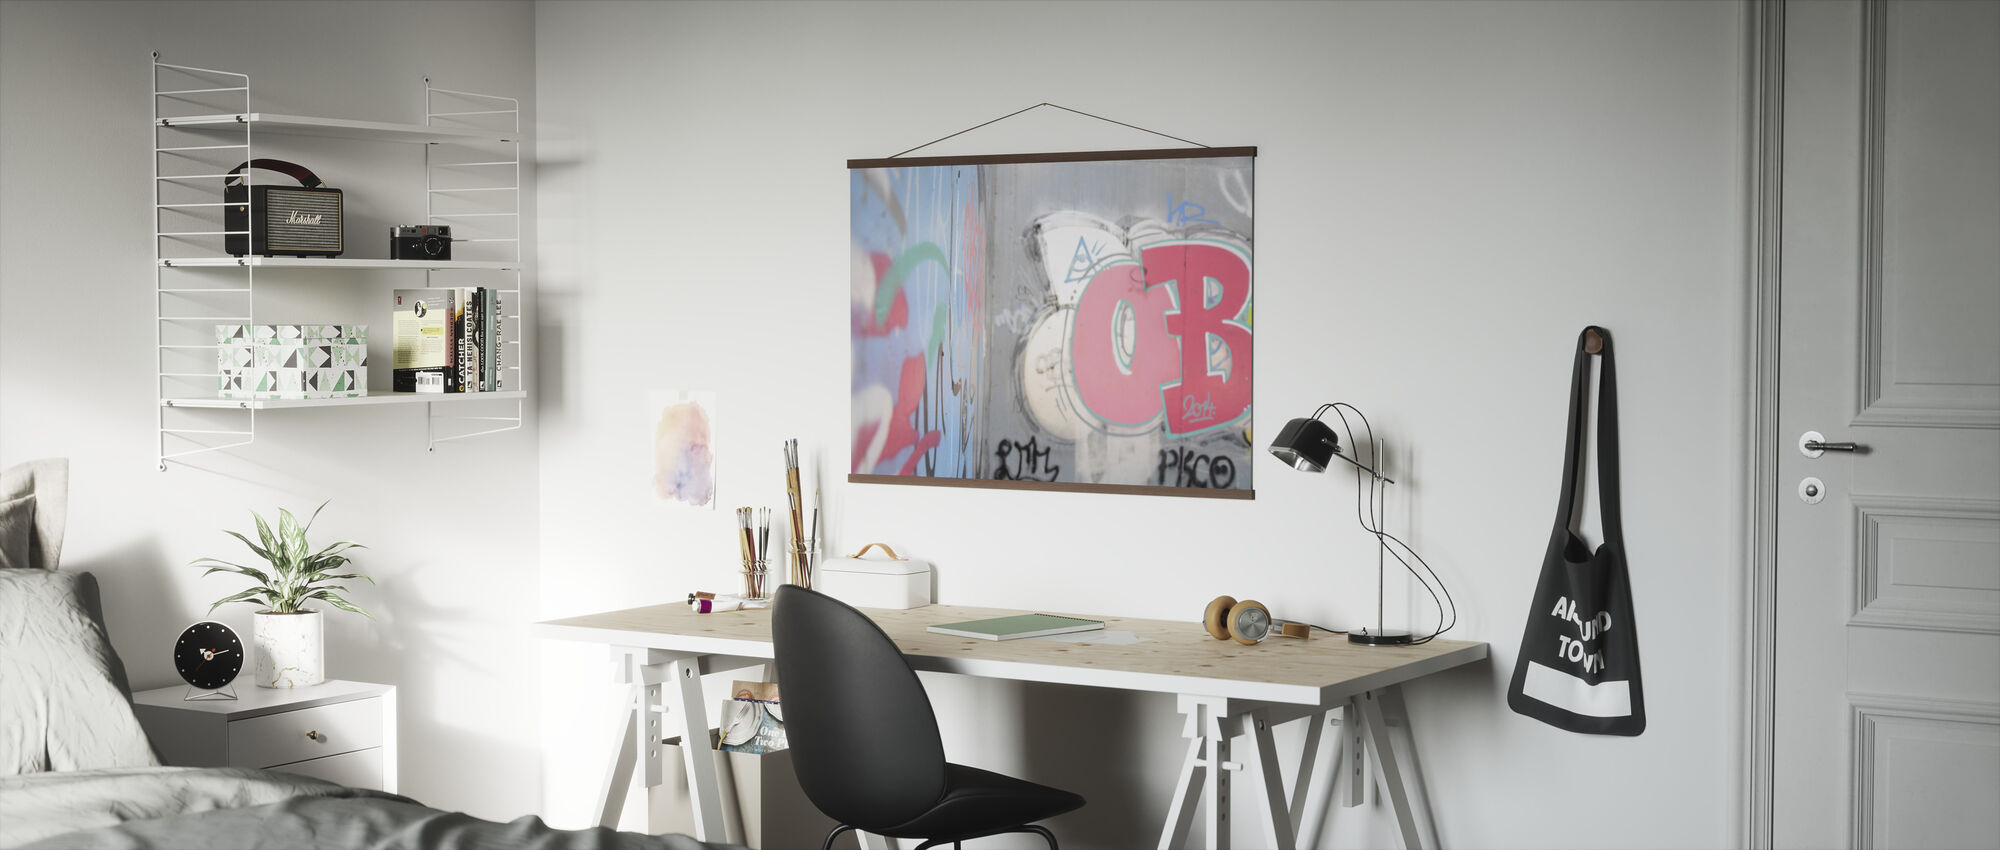 Graffiti on Cement Wall - Poster - Office